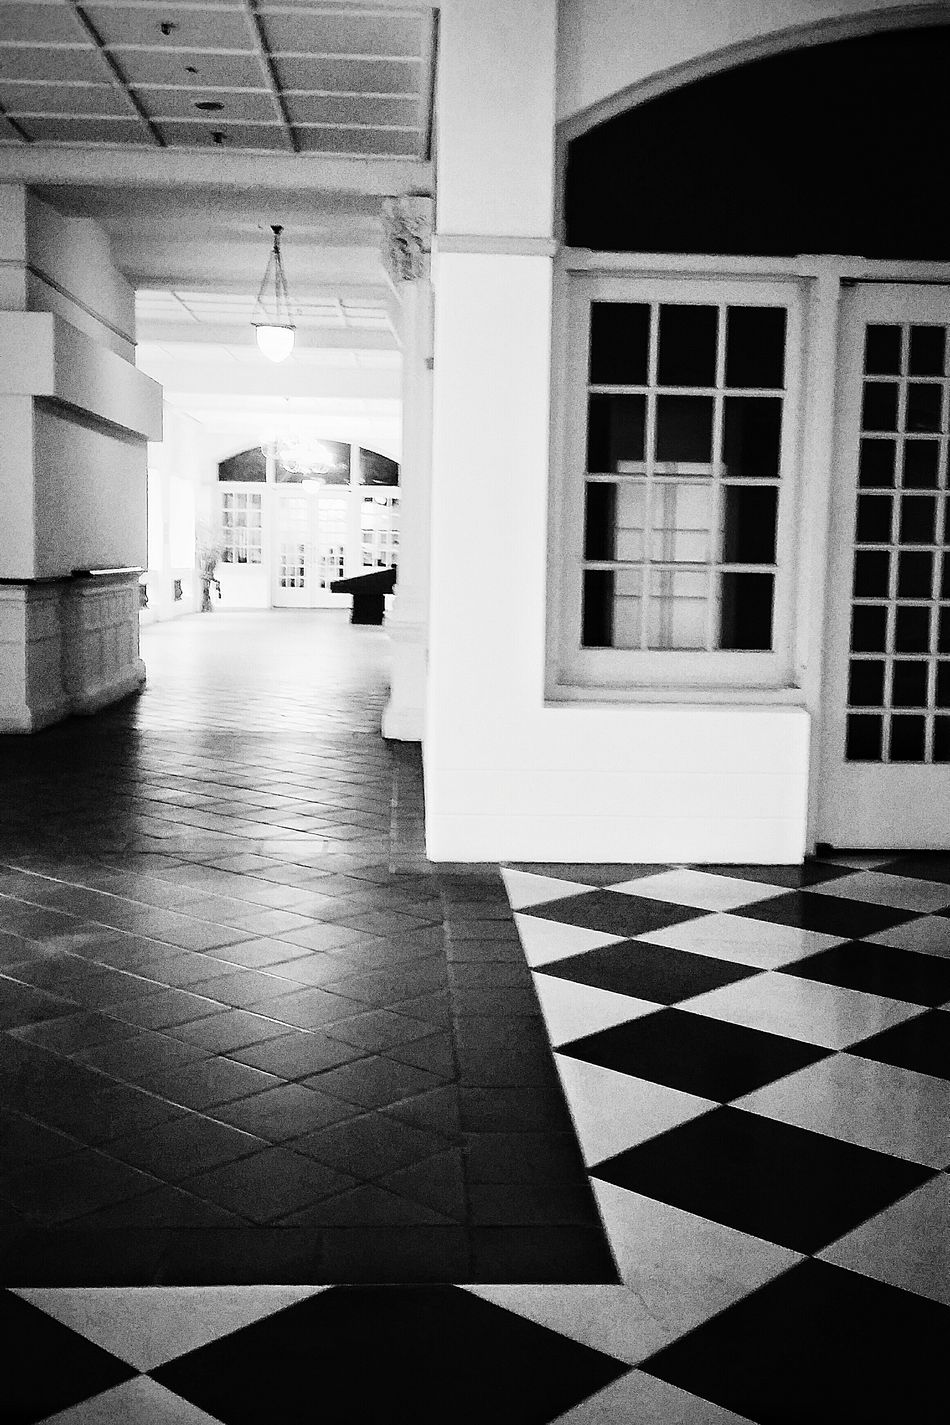 Raffles Hotel  Architecture 1887 Colonial Luxury Hotel Bnw Bnw Architecture Bnw_collection Bnw_globe Bnw_photo Bnw_city Bnw_life Eyemphotography Eyeemcollection EyeEm Bnw EyeEm Gallery Eyeem Architecture